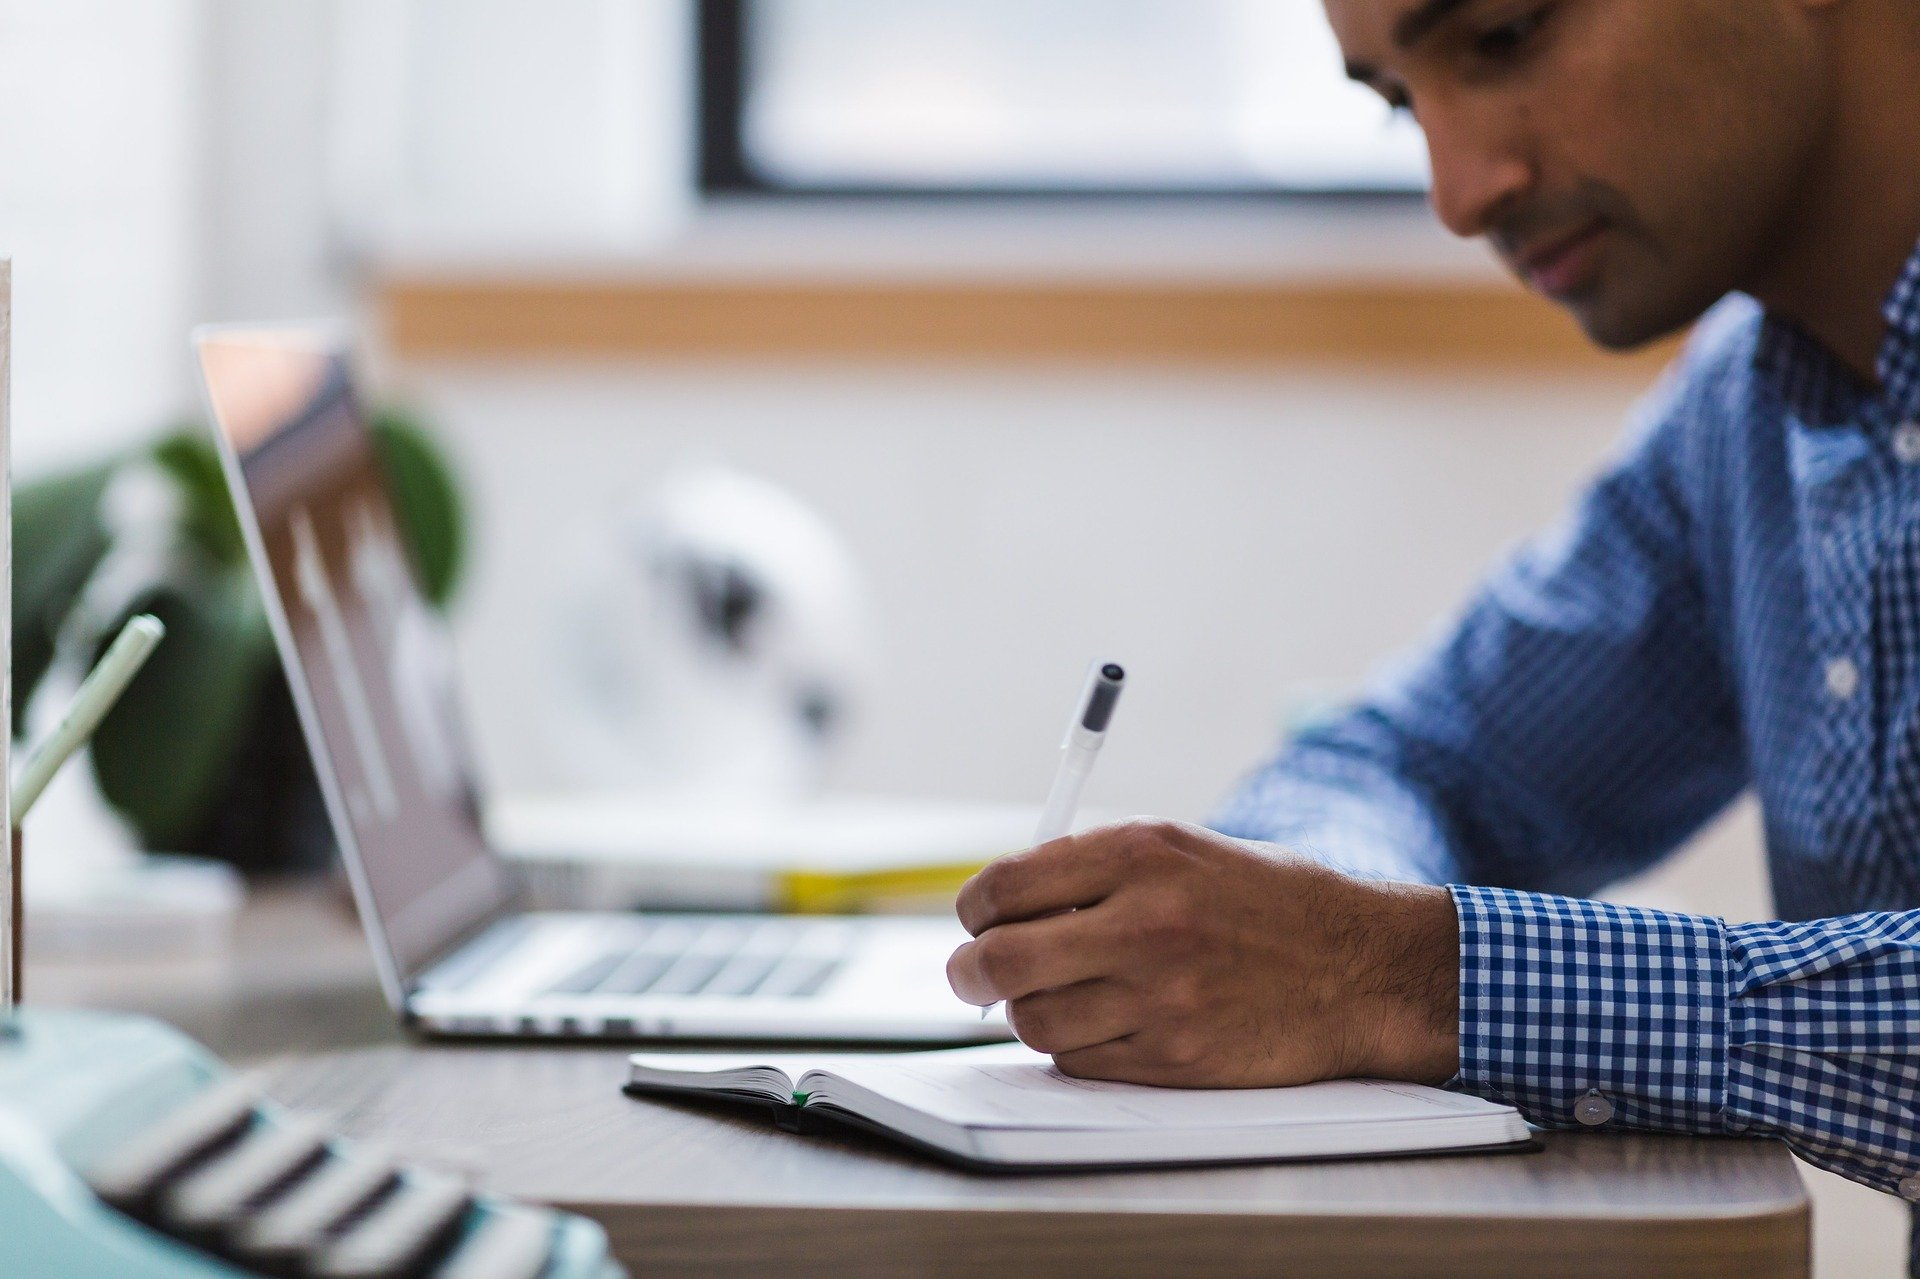 Man taking a practice exam from NCEExamprep.com to prepare for the NCE Exam